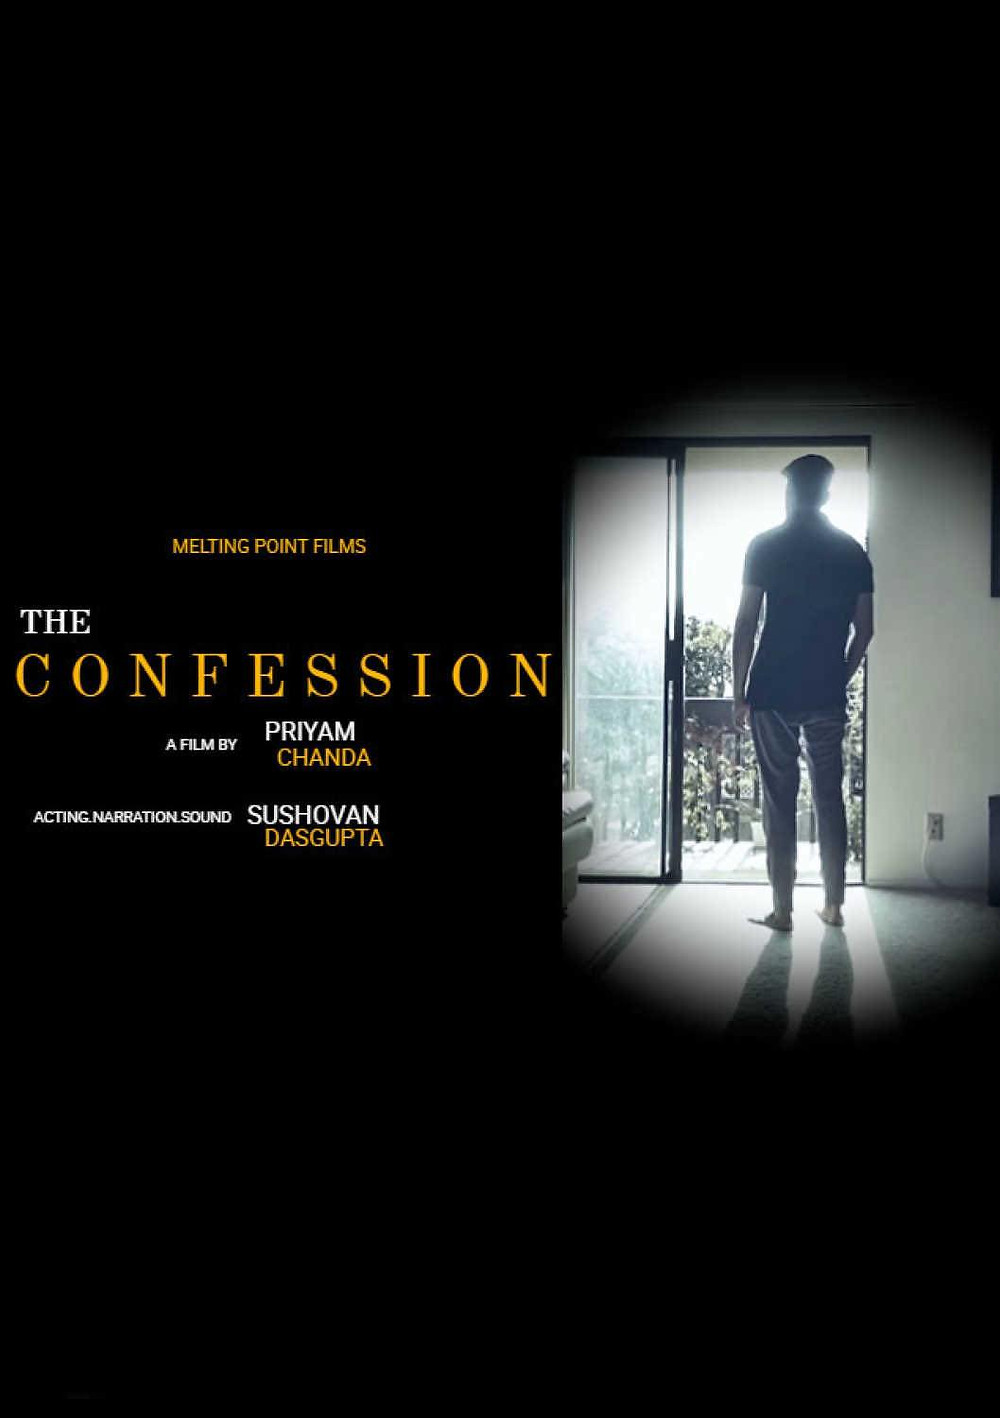 The Confession movie poster